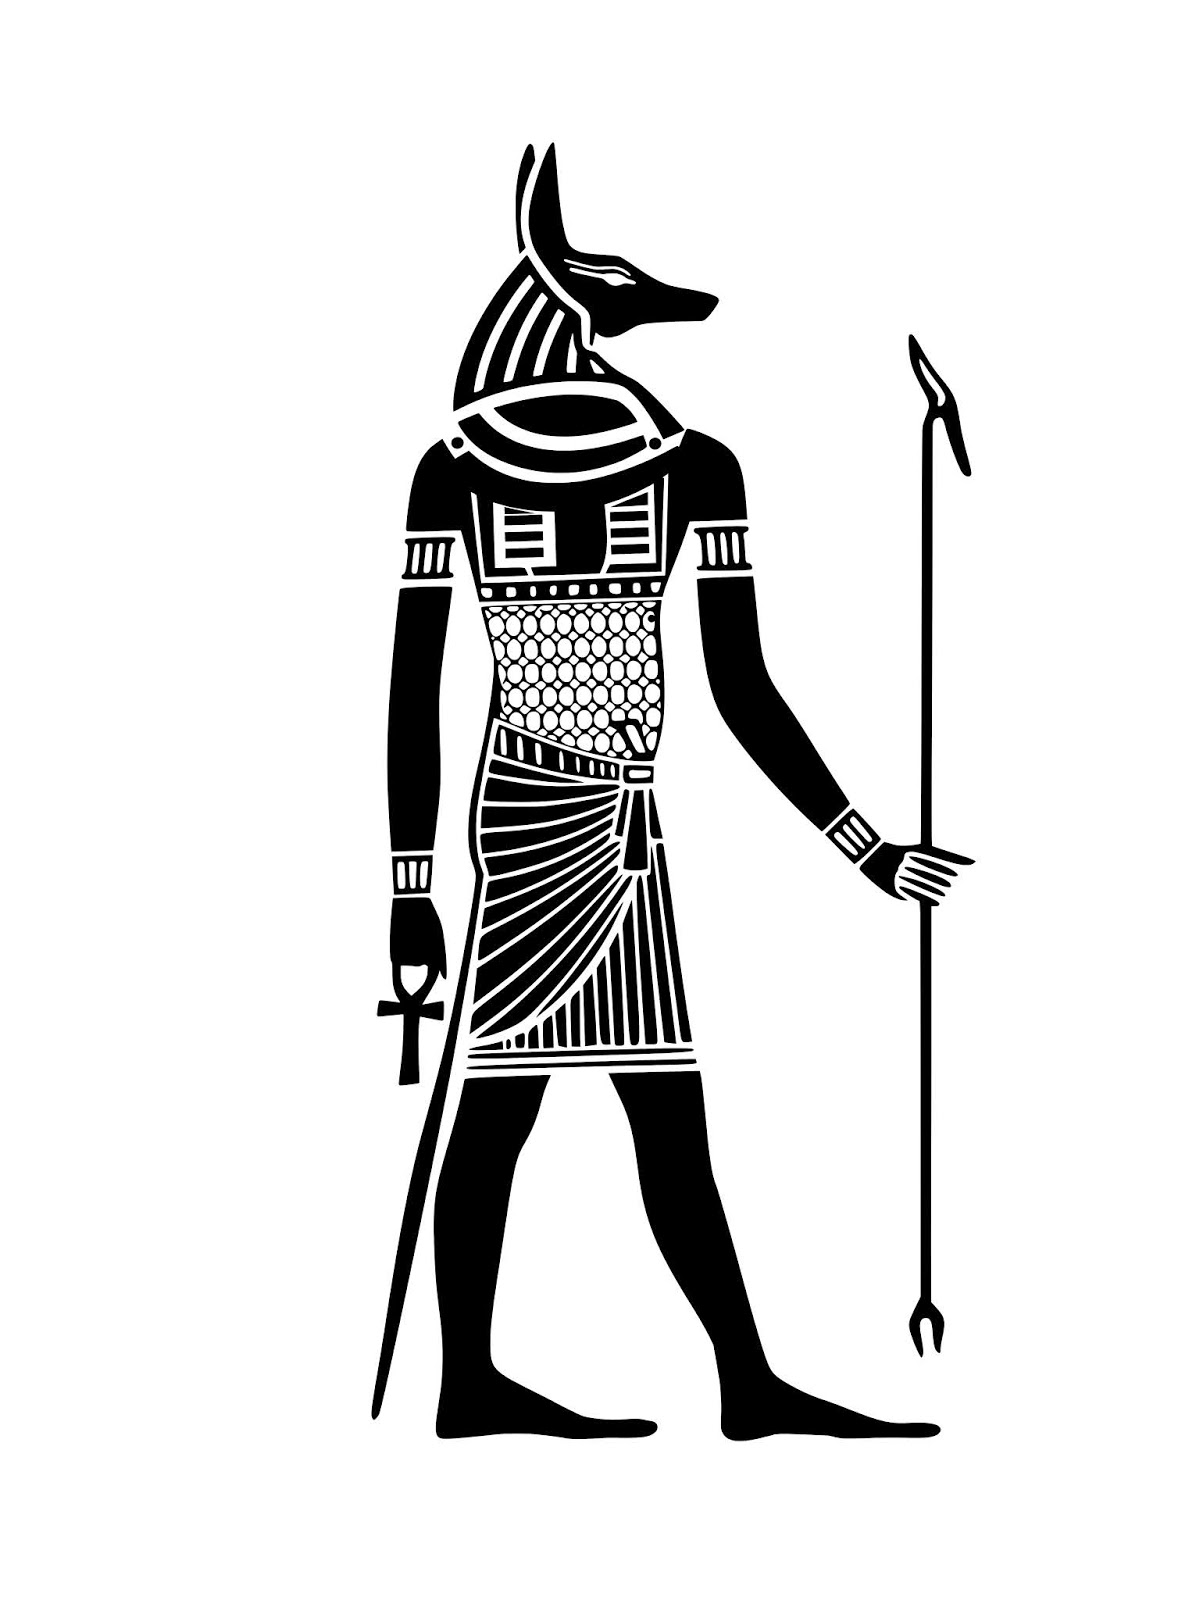 Illustration of Anubis pharaohs ancient silhouette